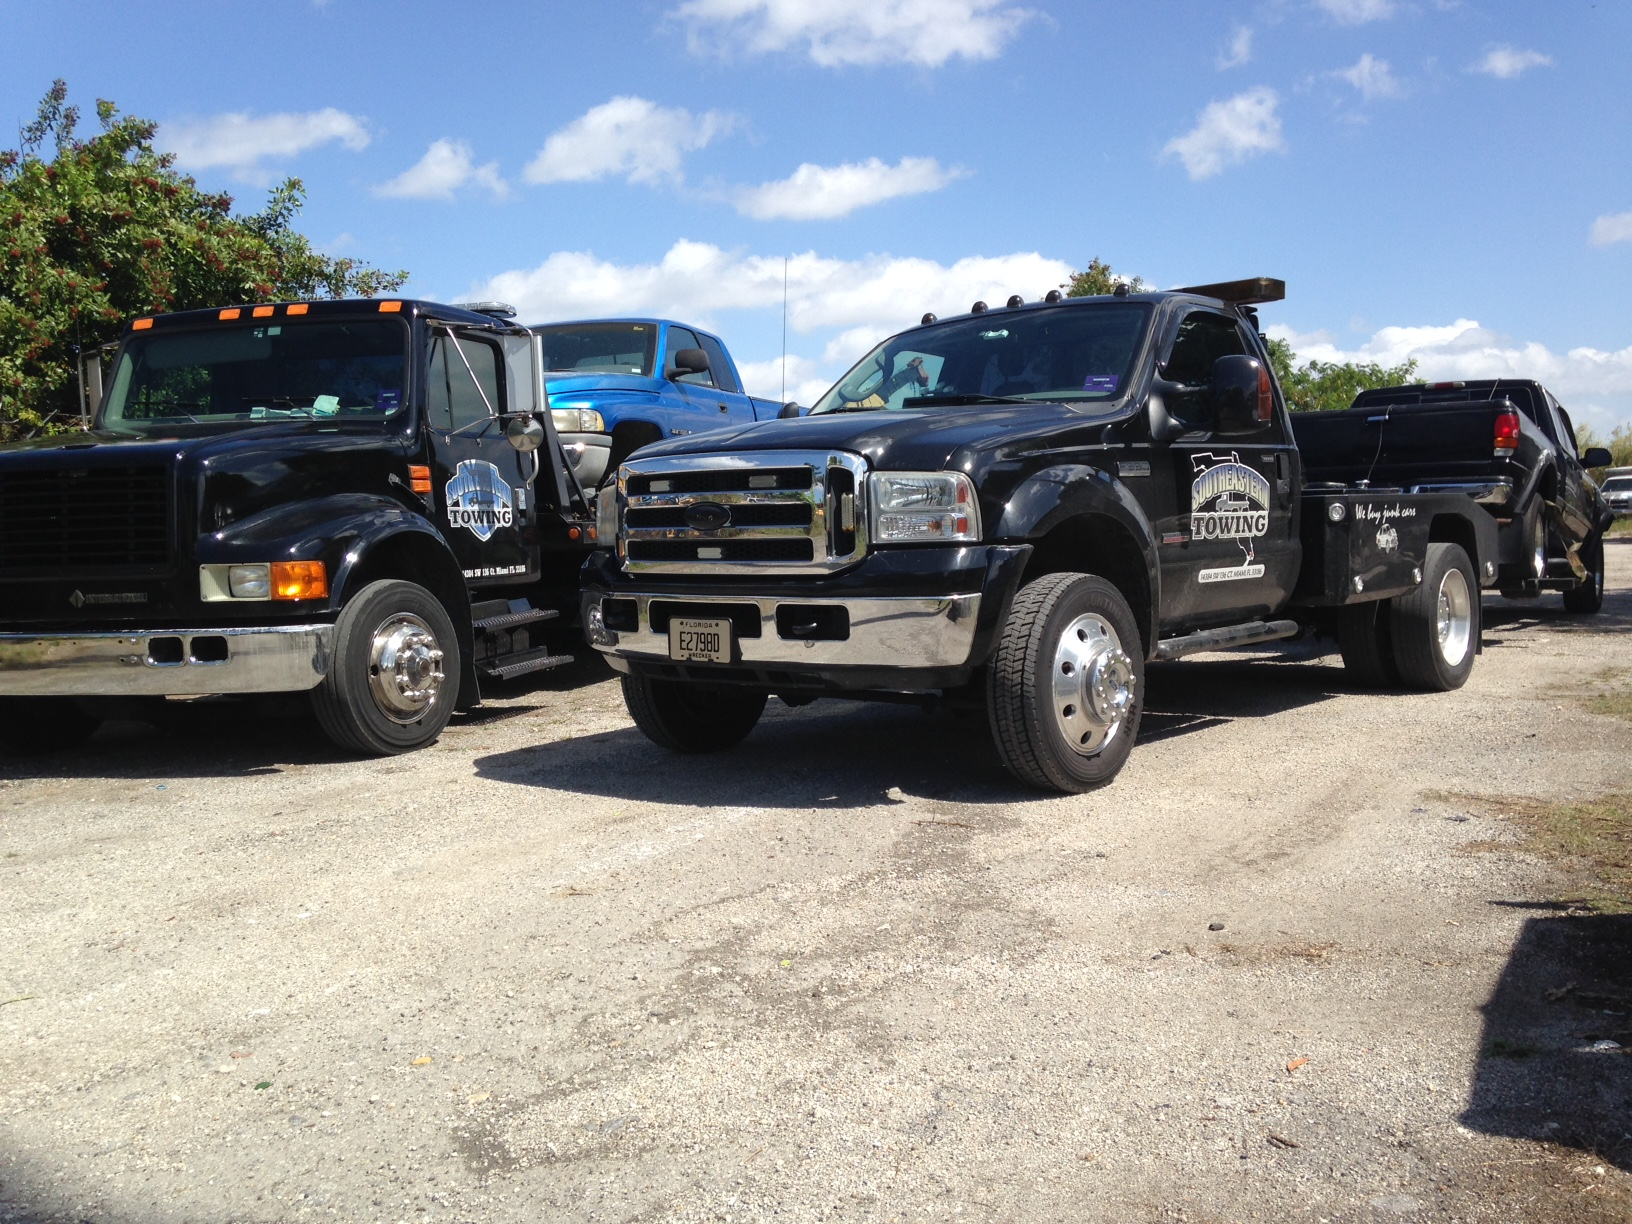 Cash for Junk Cars 3724 NE 16th St, Homestead, FL 33033 - YP.com